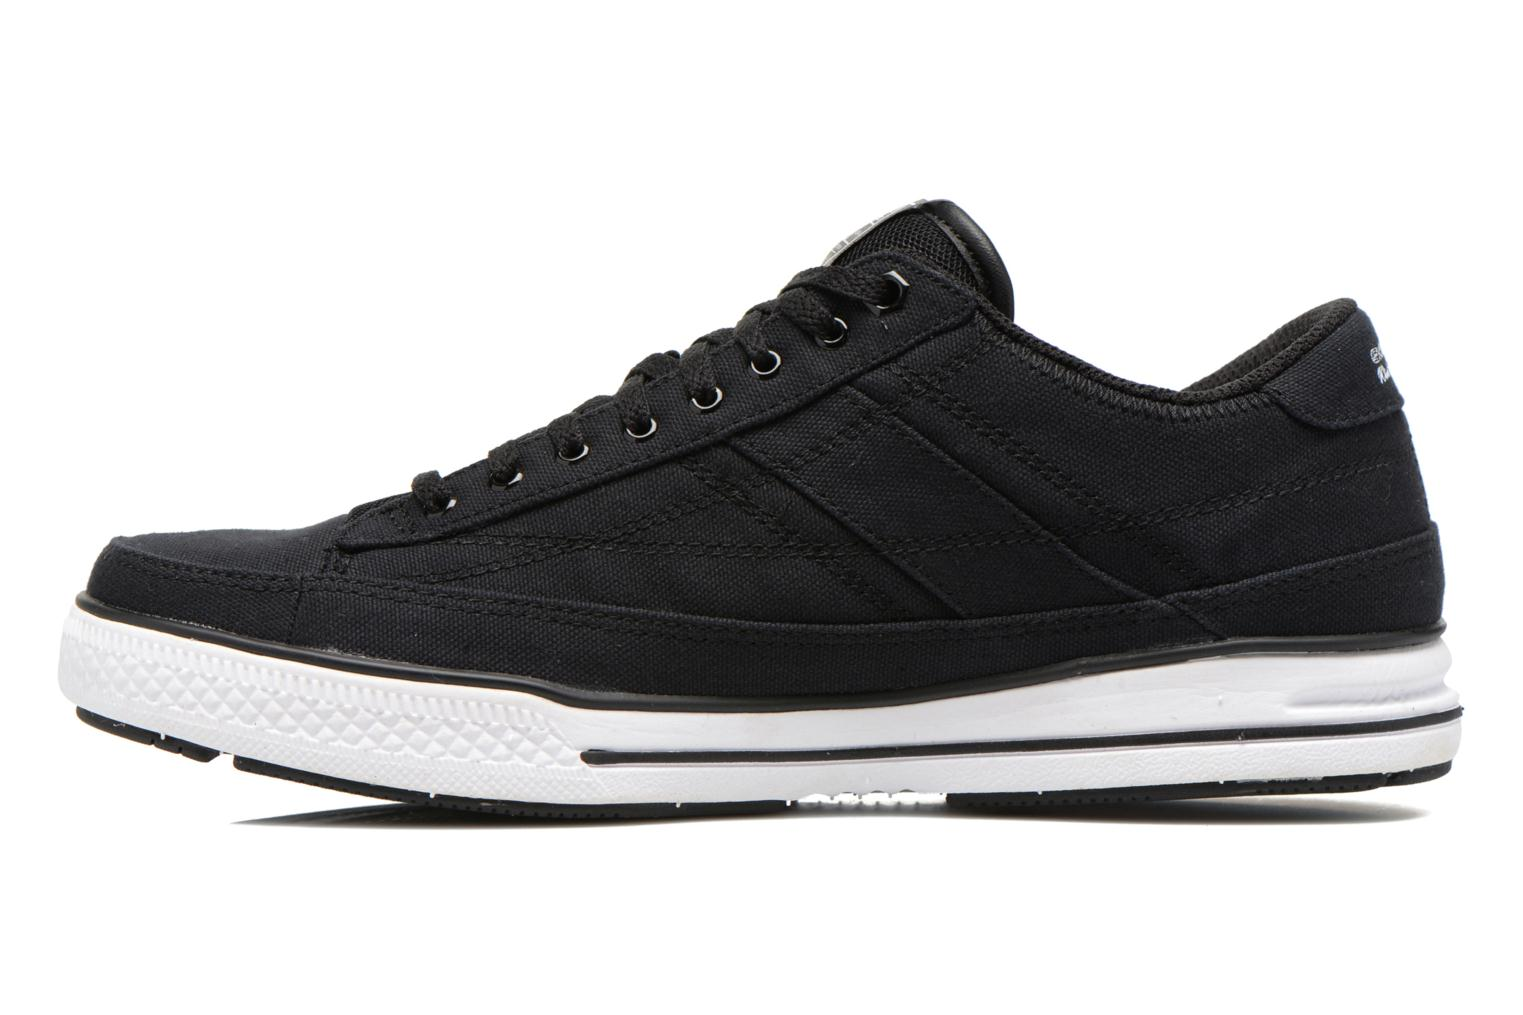 Baskets Skechers Arcade- Chat Mf 51014 Noir vue face